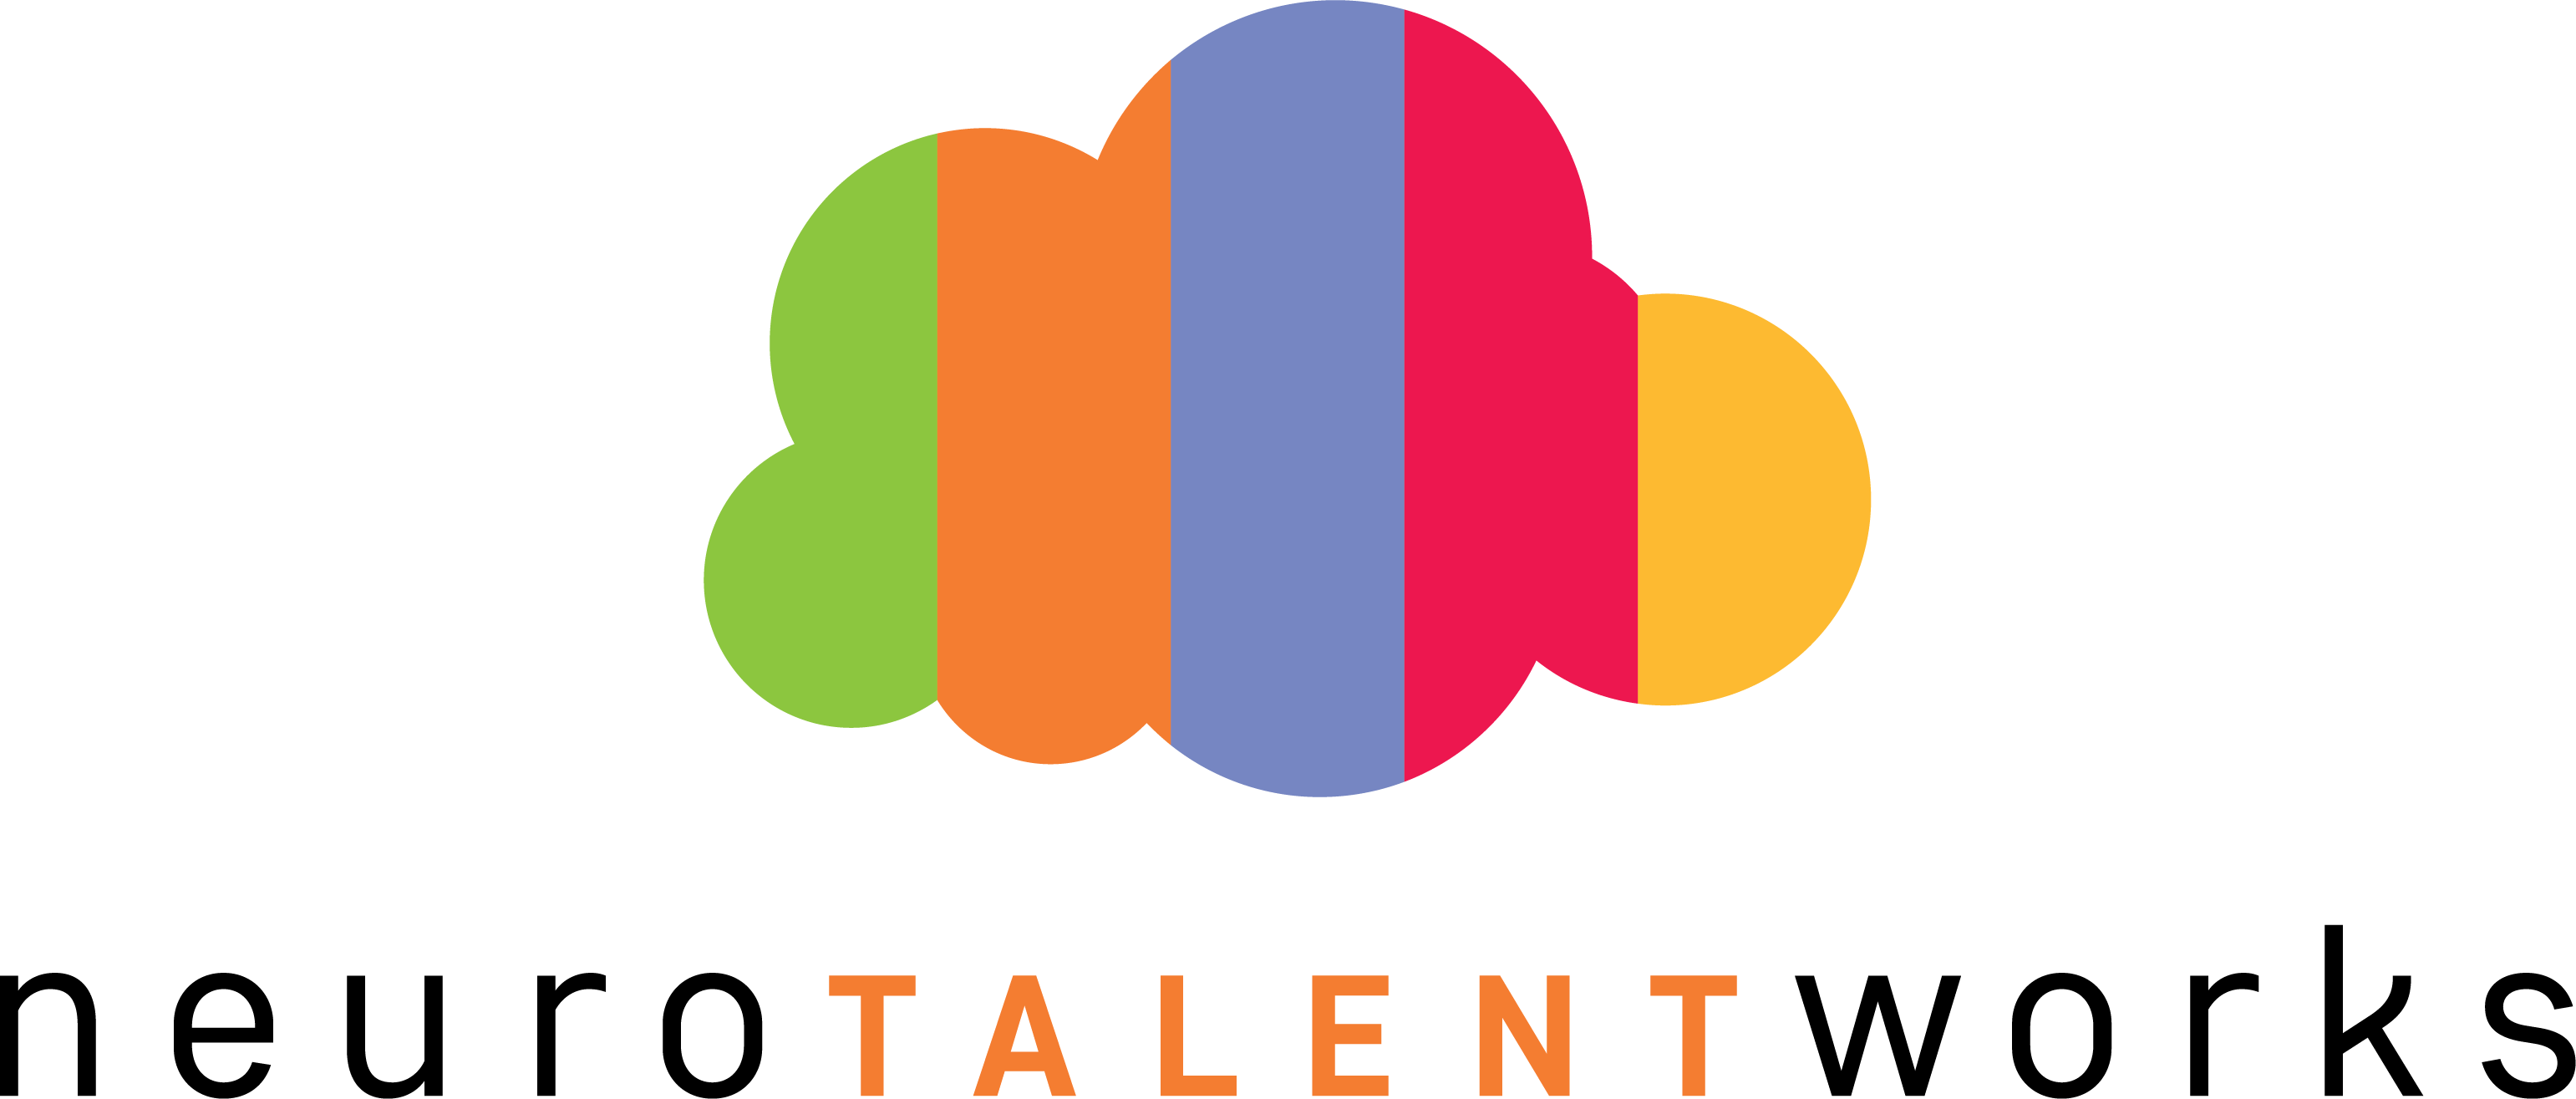 NeuroTalent Works